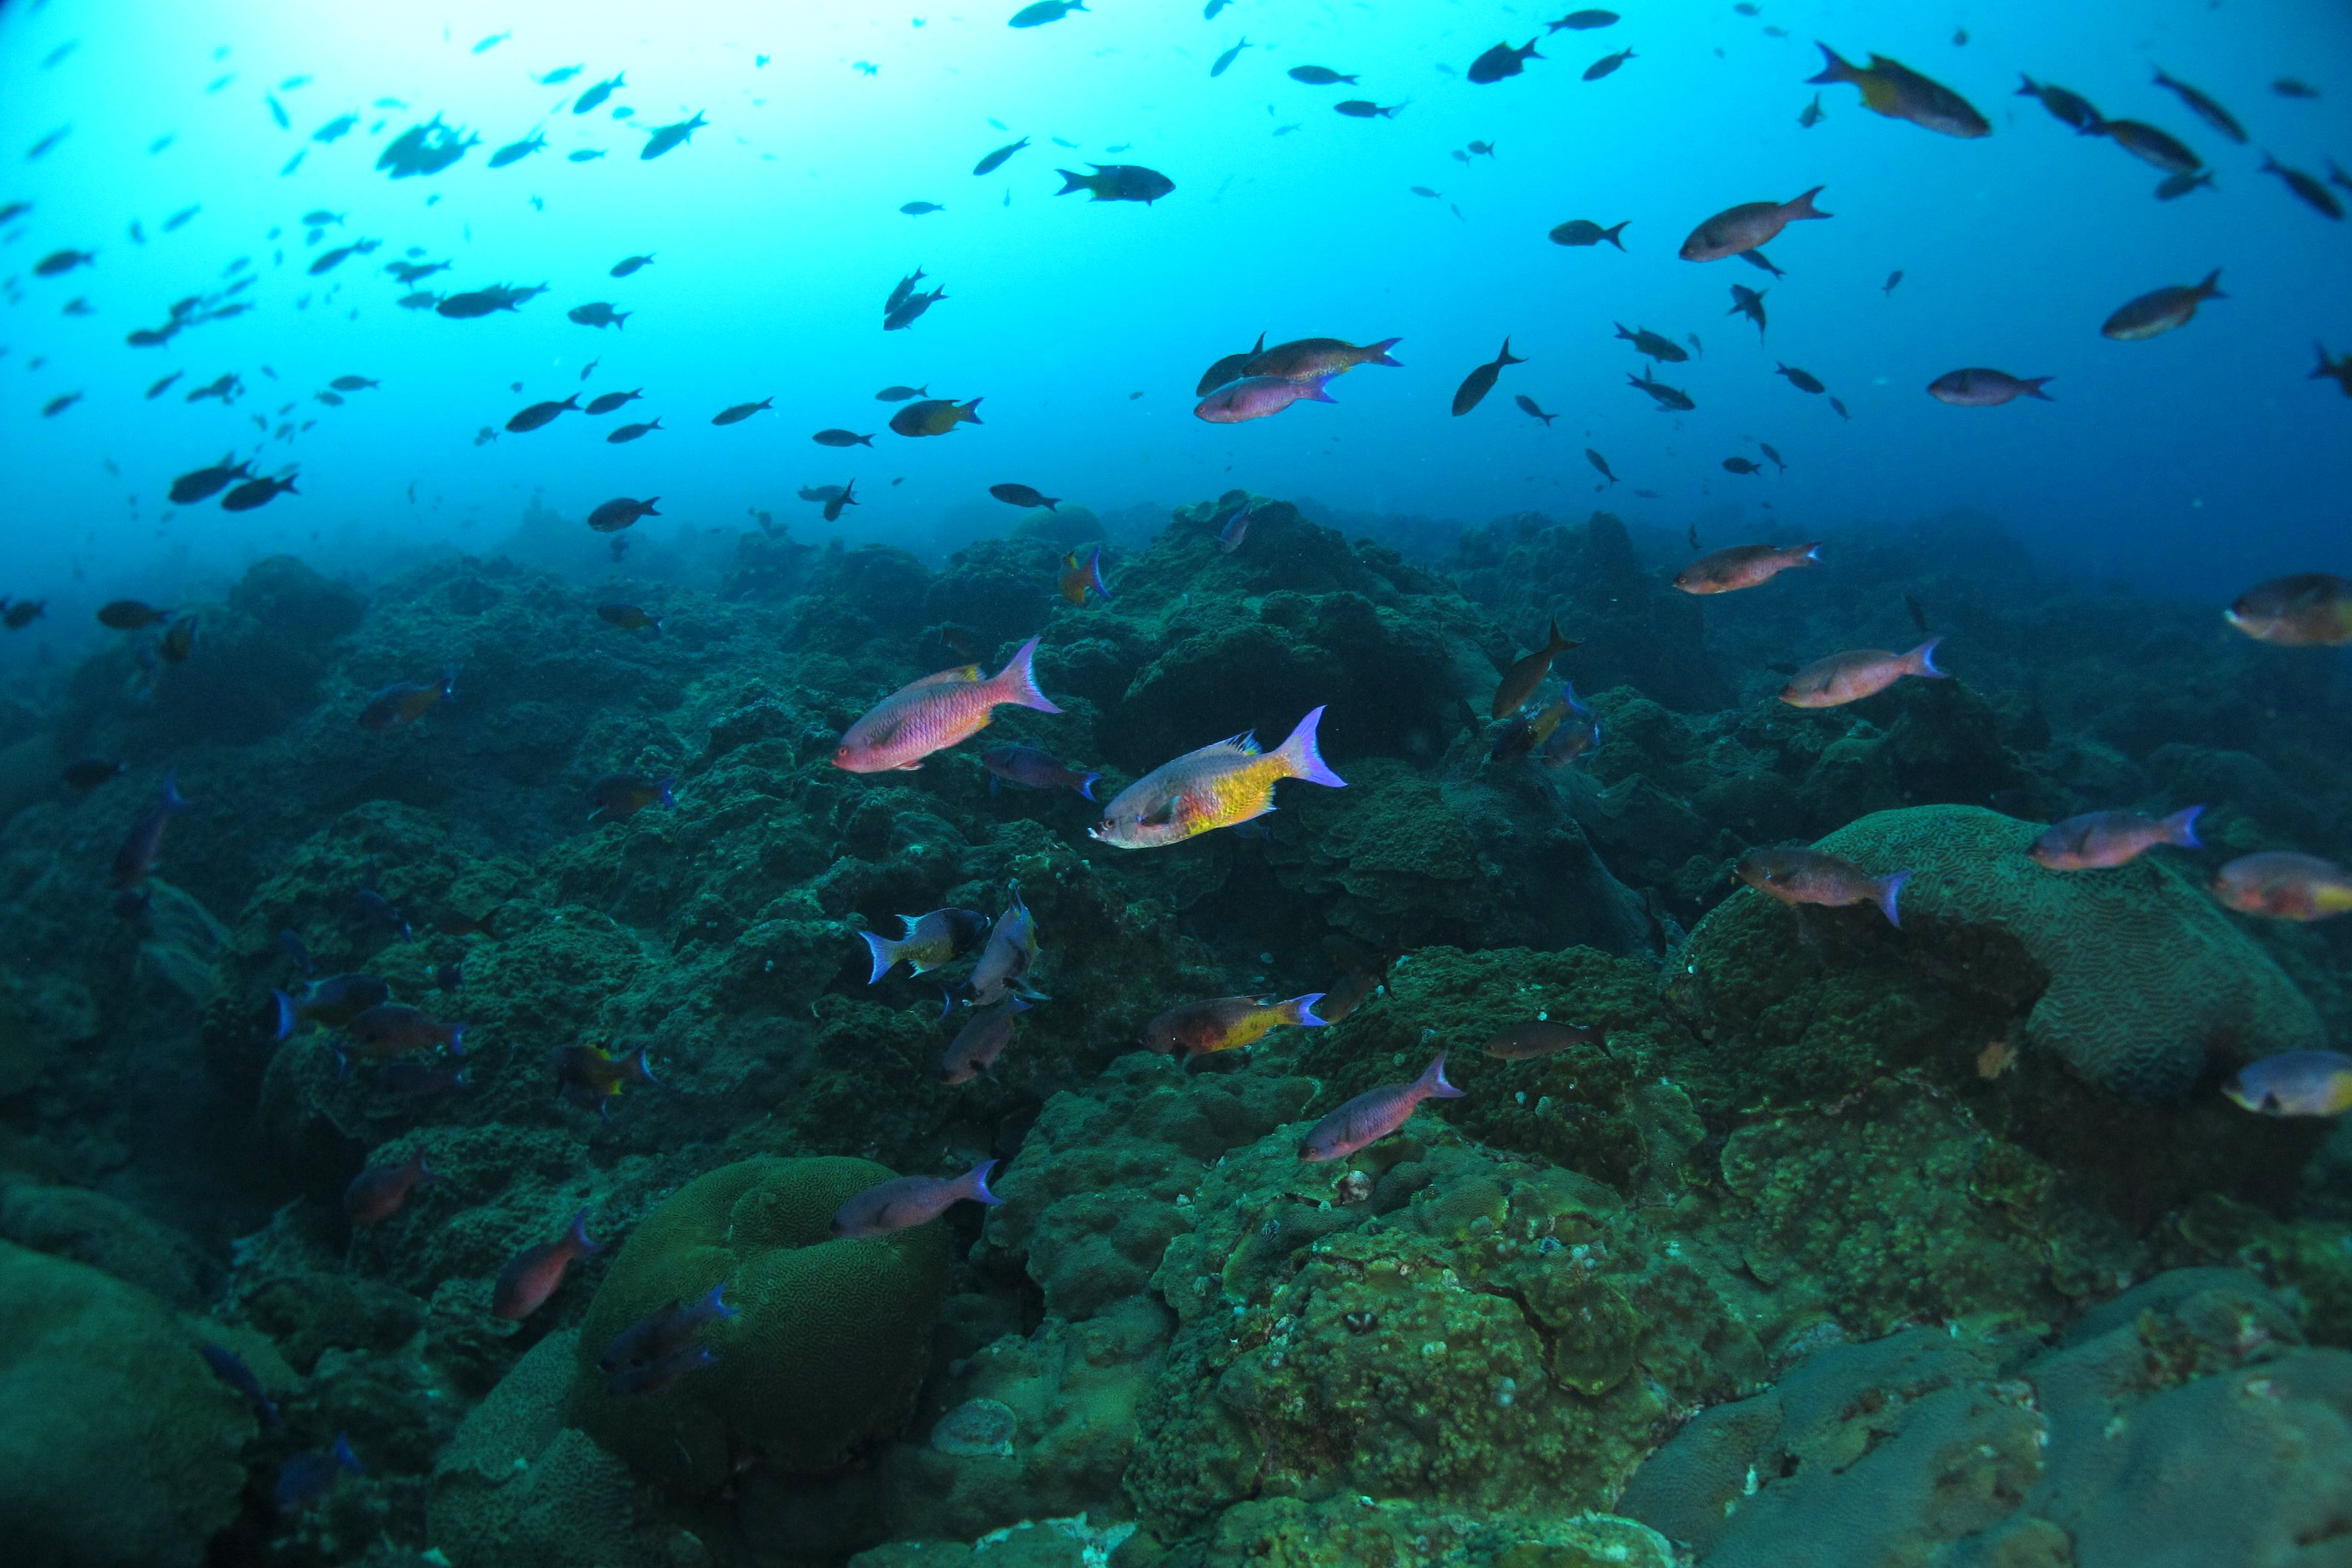 A school of creole wrasse (Clepticus parrae) swim along the reef. Location: Gulf of Mexico, Flower Garden Banks